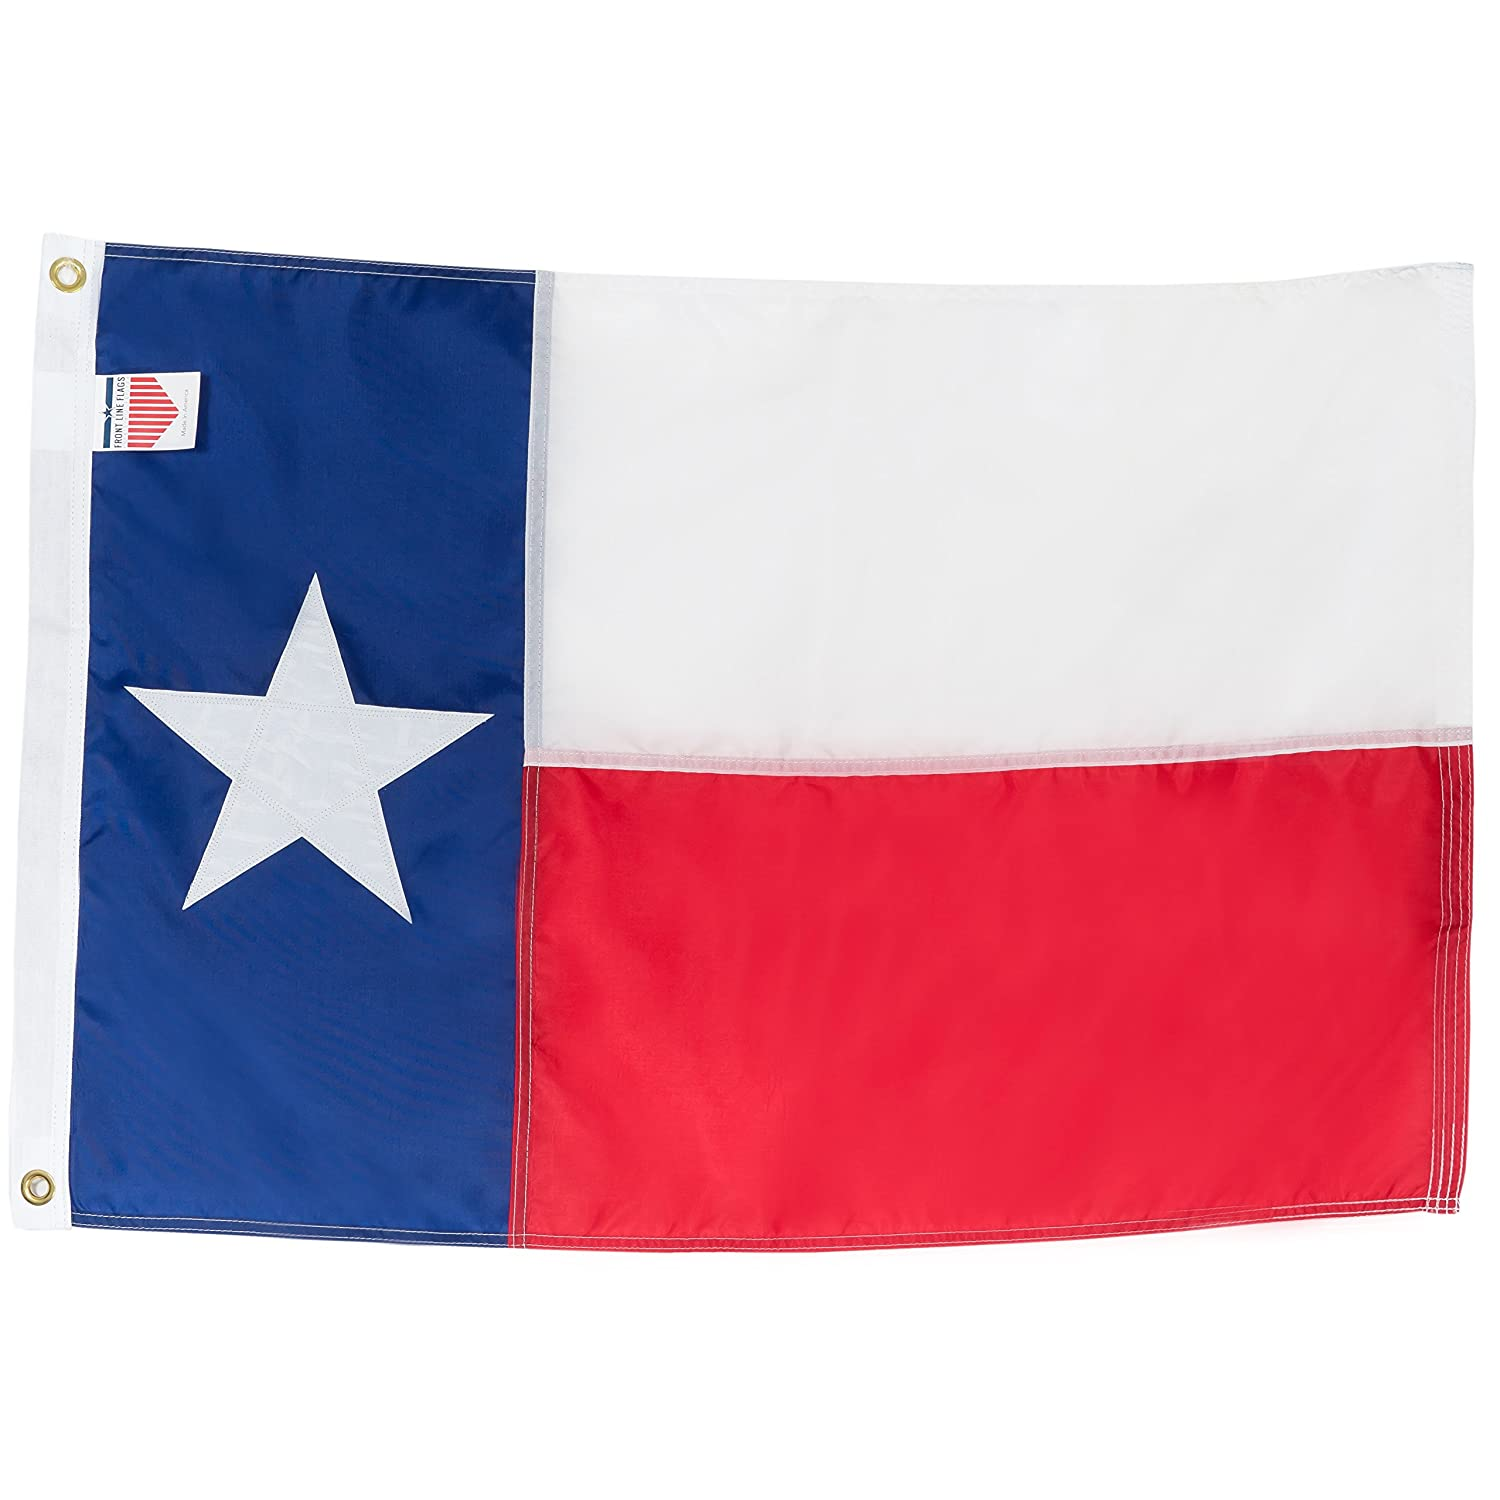 Texas State Flag 2x3 Heavy Duty TX Flag - 100% Made in USA Flags - Appliqué Nylon Lone Star Banner, Quadruple Stitched Fly End, Outdoor & Weather-Resistant, Vibrant, Brass Grommets for Easy Display